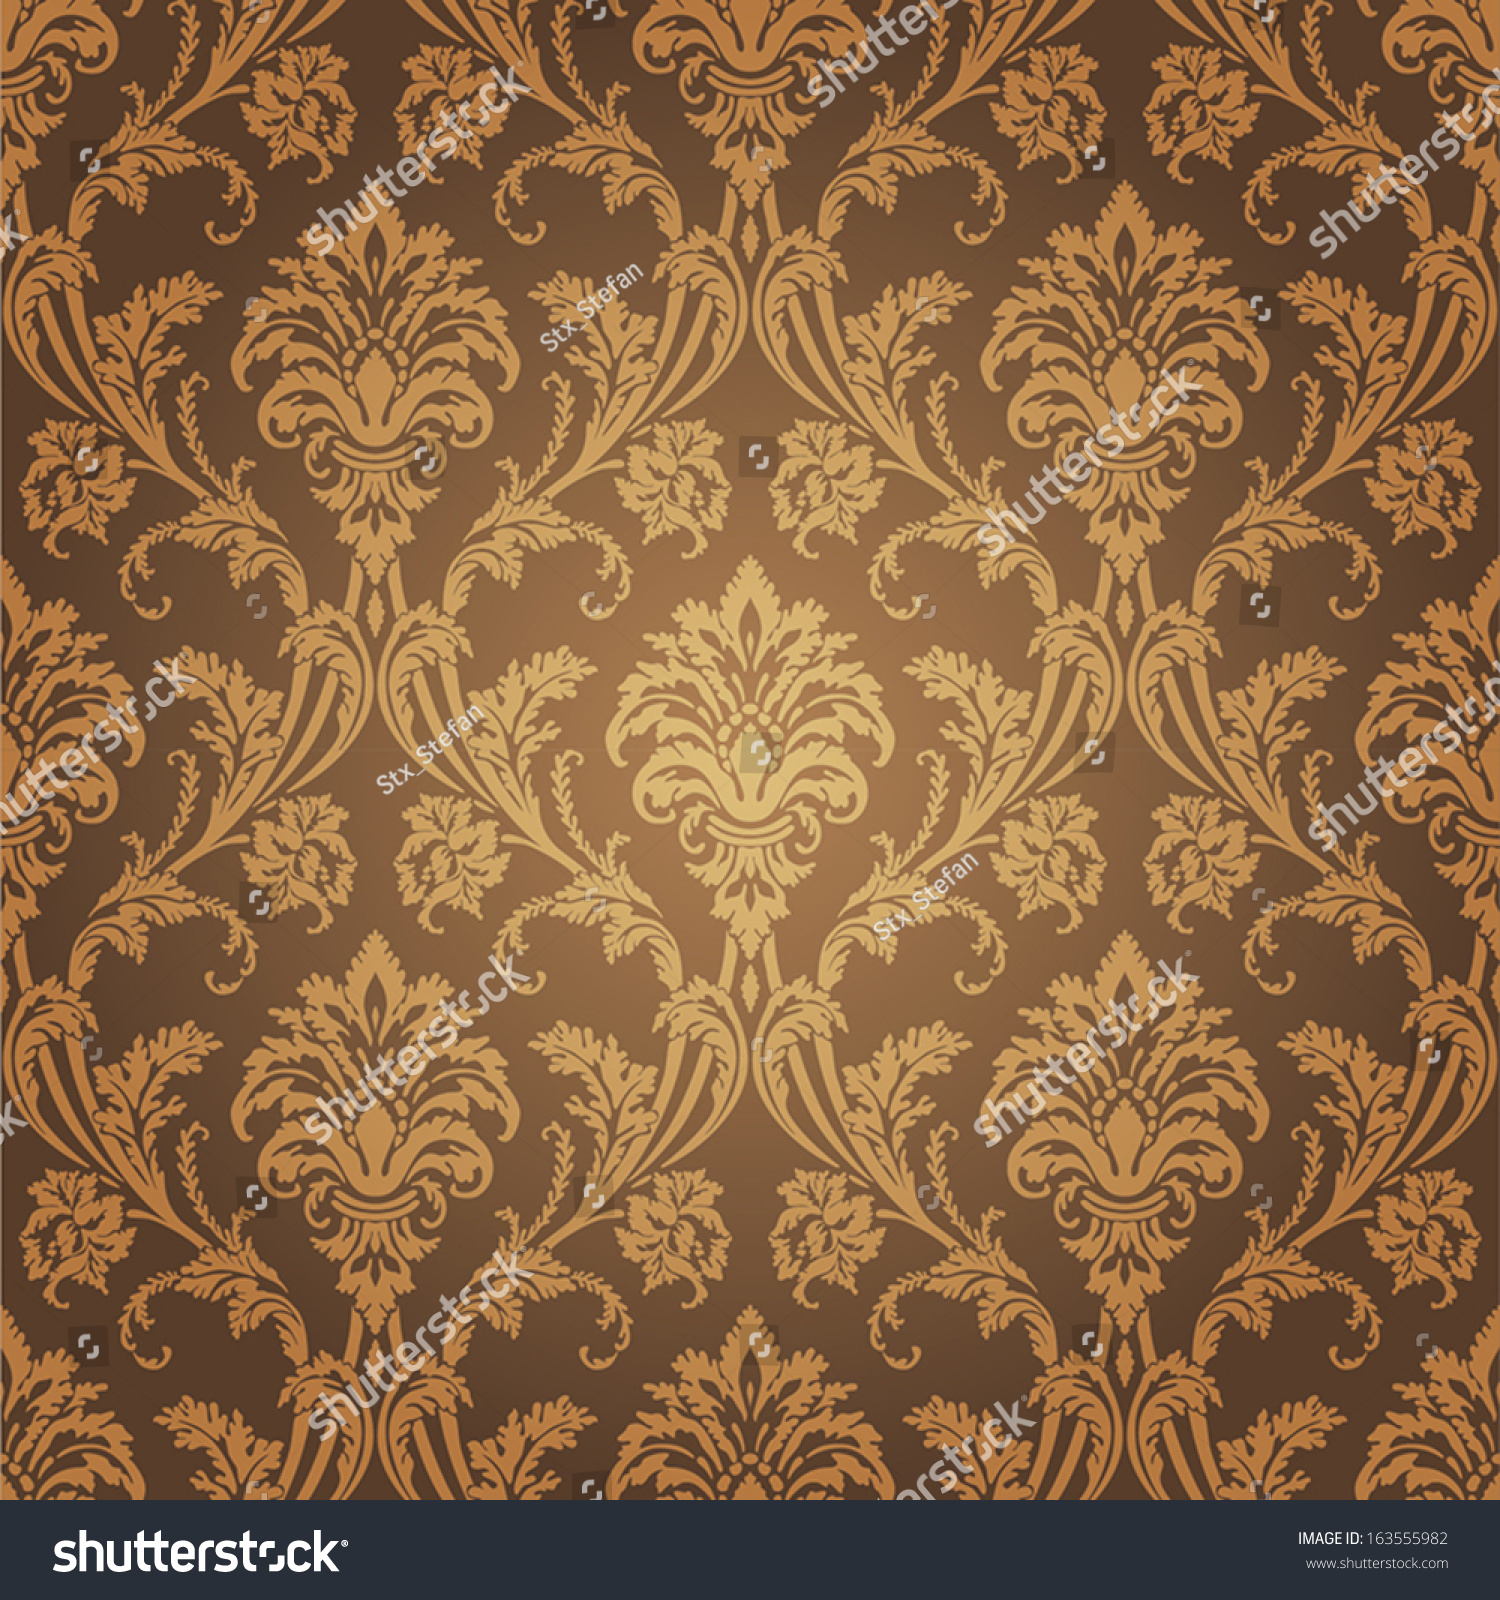 Golden Design Wallpaper : Golden floral wallpaper old style retro stock vector